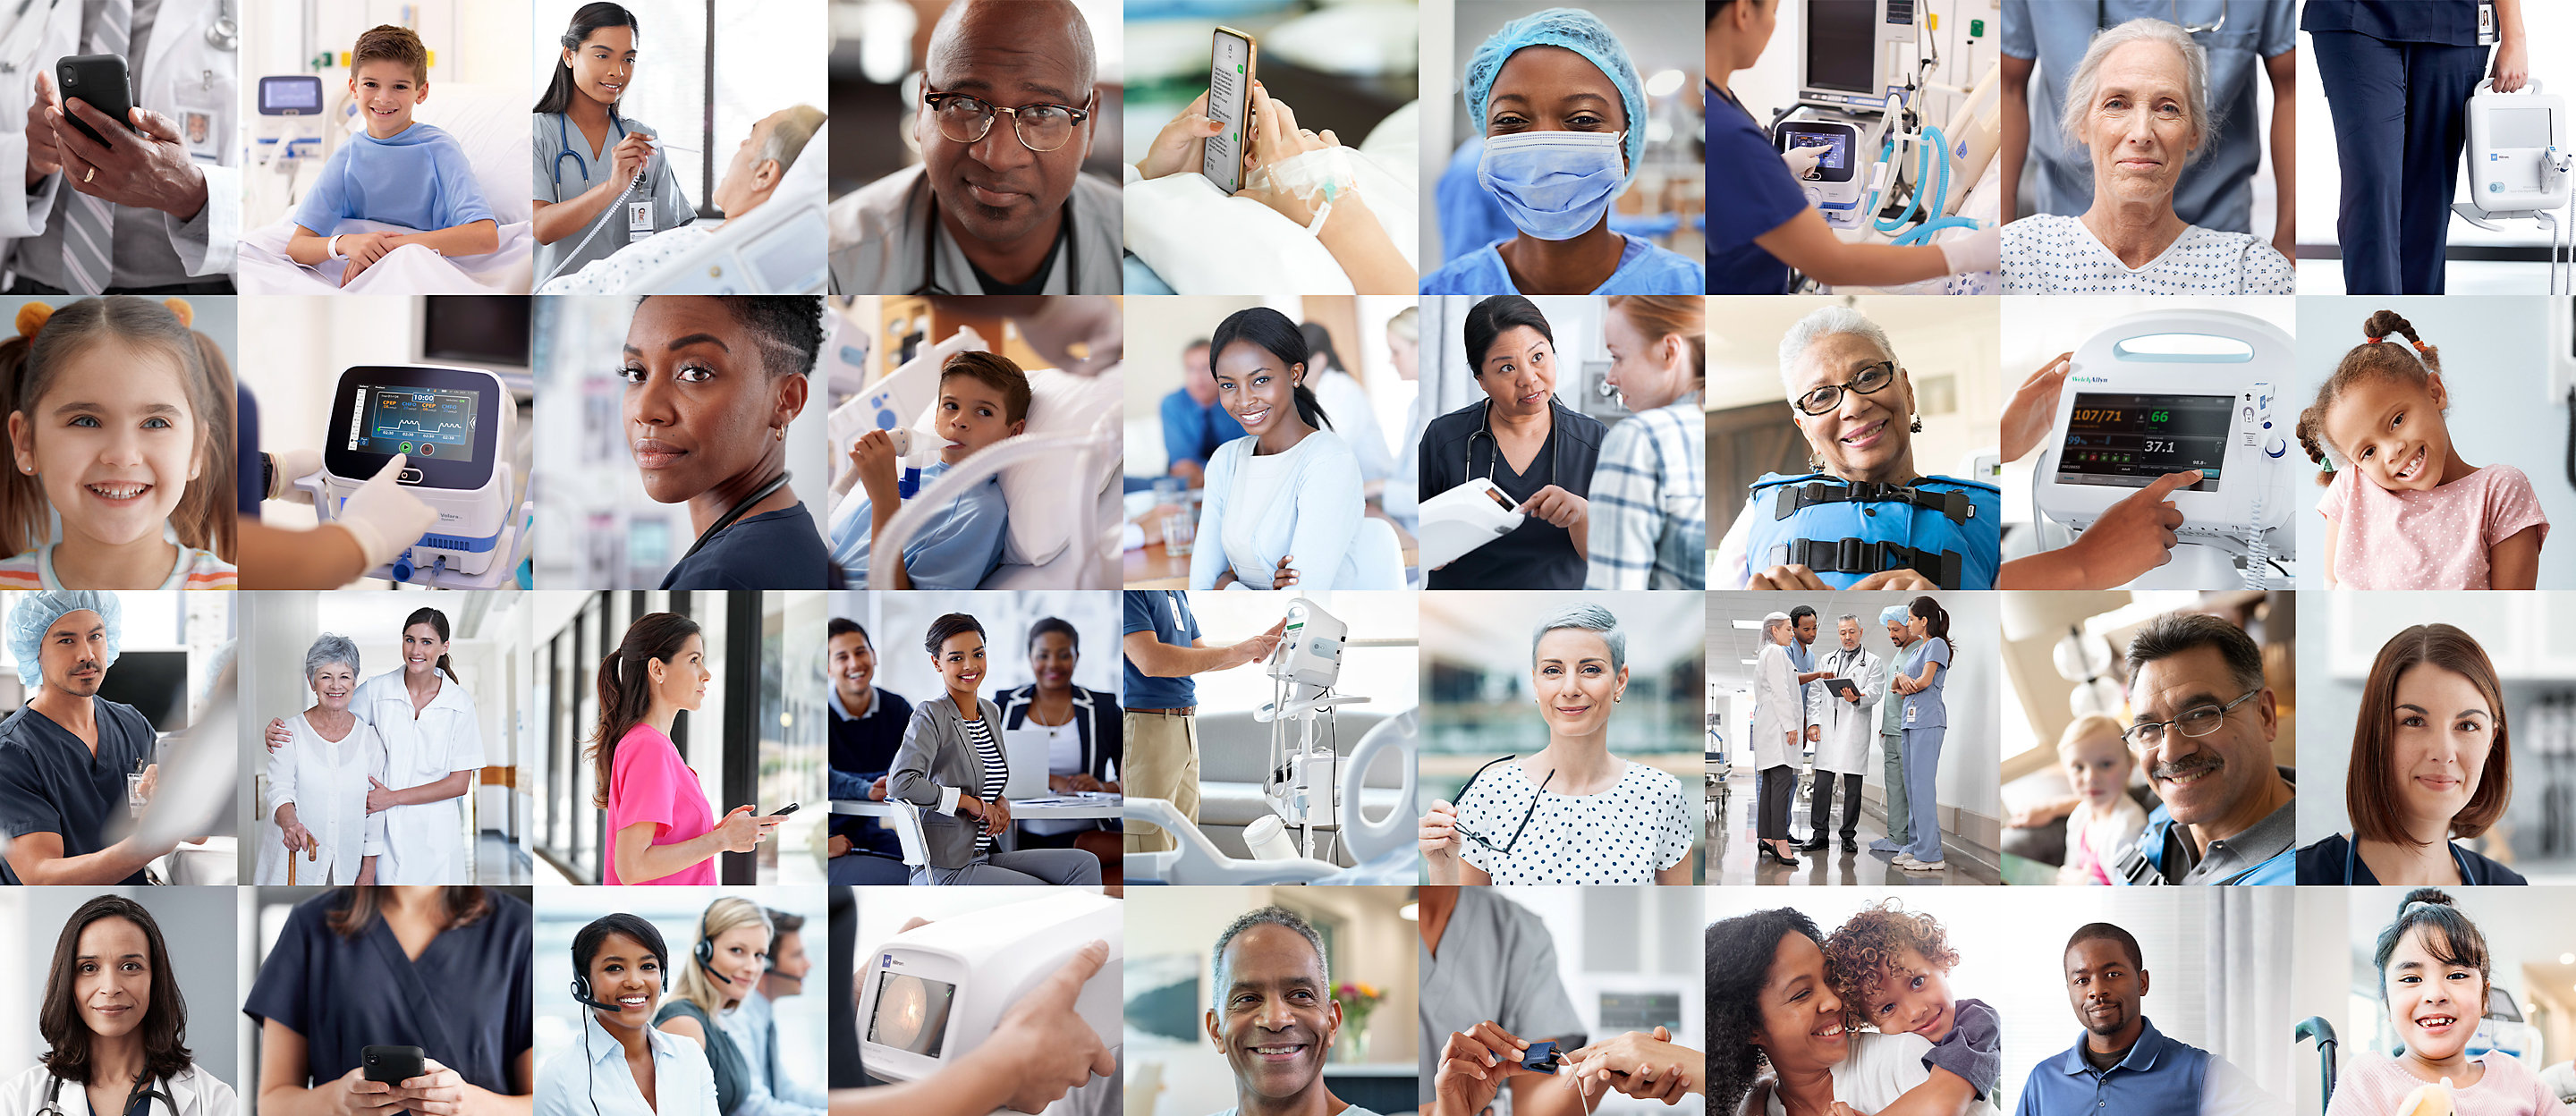 Collage of healthcare professionals and patients